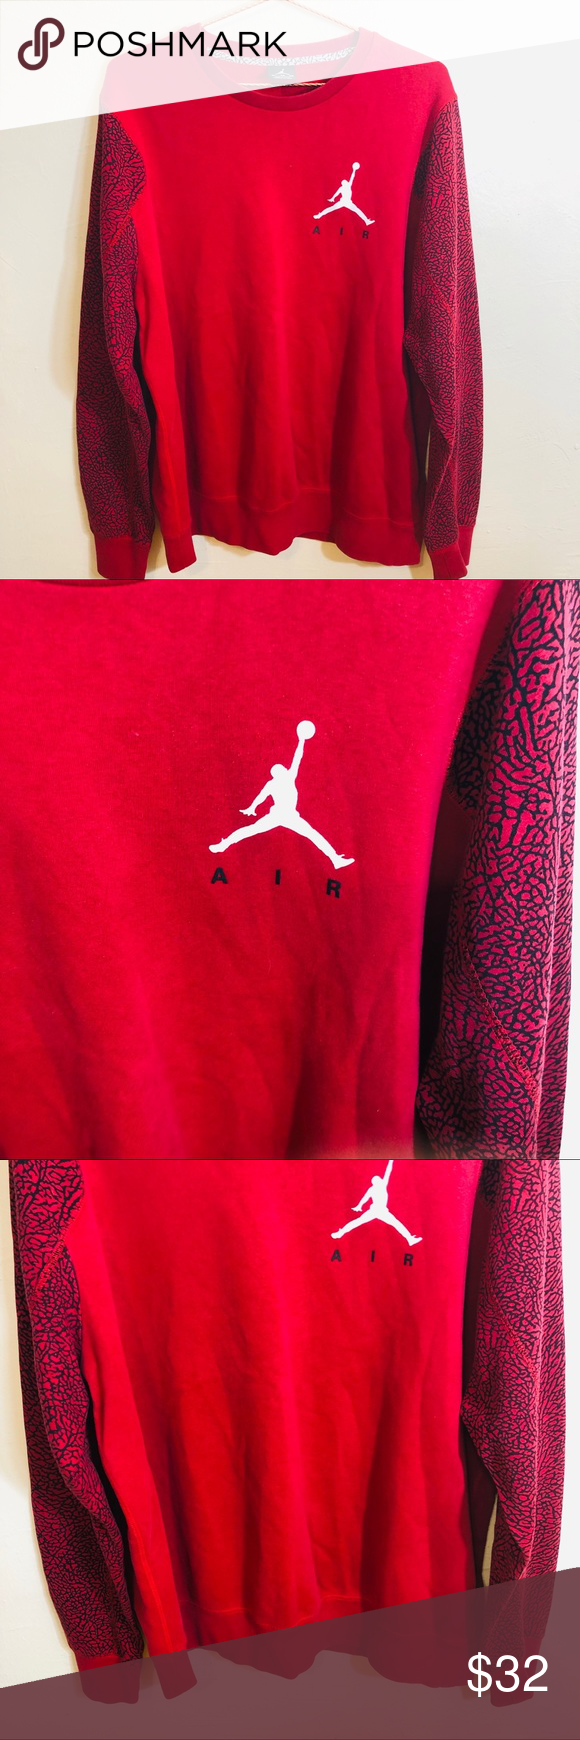 """Jordan Air Red Black Long Sleeve Sweater Jordan Air Red Black Long Sleeve Sweater   Great Condition  Fabric: See Pictures for Details  Below are flat lay approximate measurements in inches:  Armpit 27"""" Sleeve 28"""" Length 31""""  No swaps/Trades 🛑 Offers Welcome.  Please browse rest of my closet LIKE,SHARE, MAKE OFFERS, BUY!!  I share other Posh Closets Daily  💯 👍🏼❤️  Please check out the rest of my closet.     Thanks for Poshing 😁 thru🥂  Item- Sweater Jordan Sweaters"""